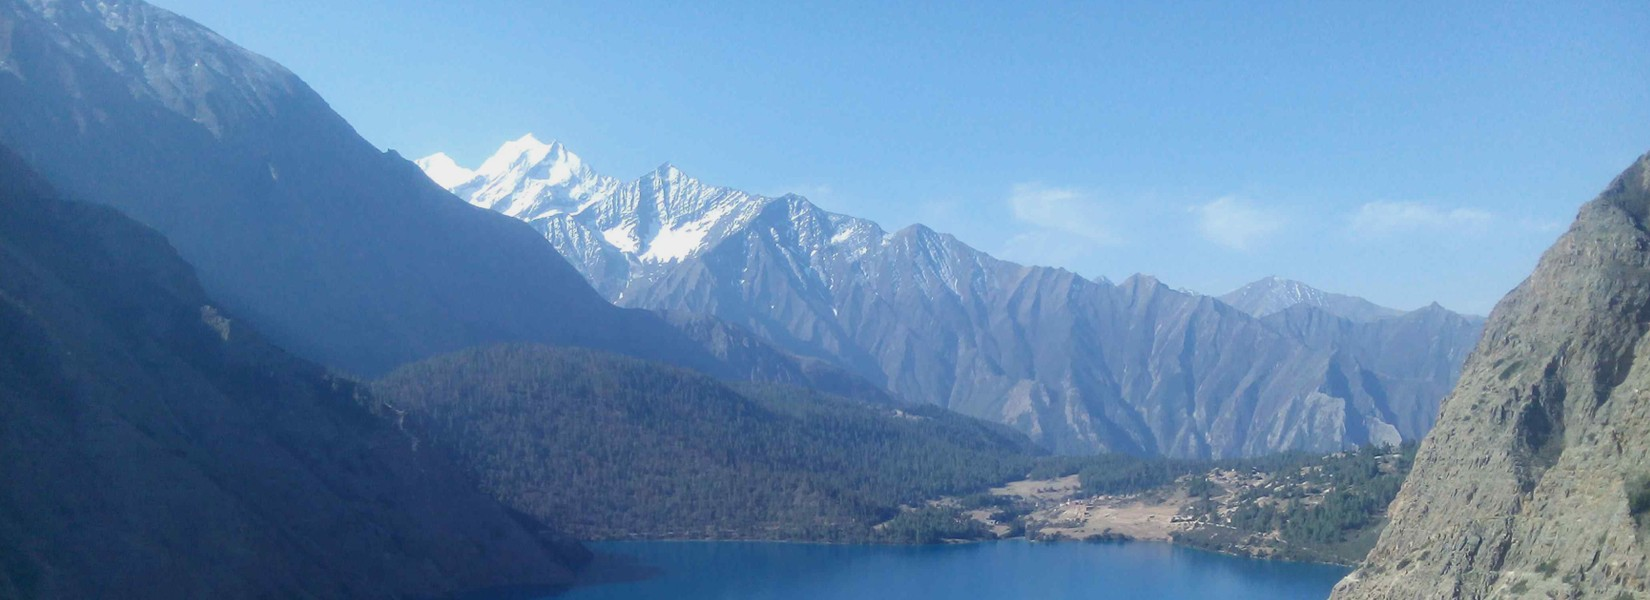 6 Restricted Area Trekking In Nepal where You can feel the Adventure Thrill